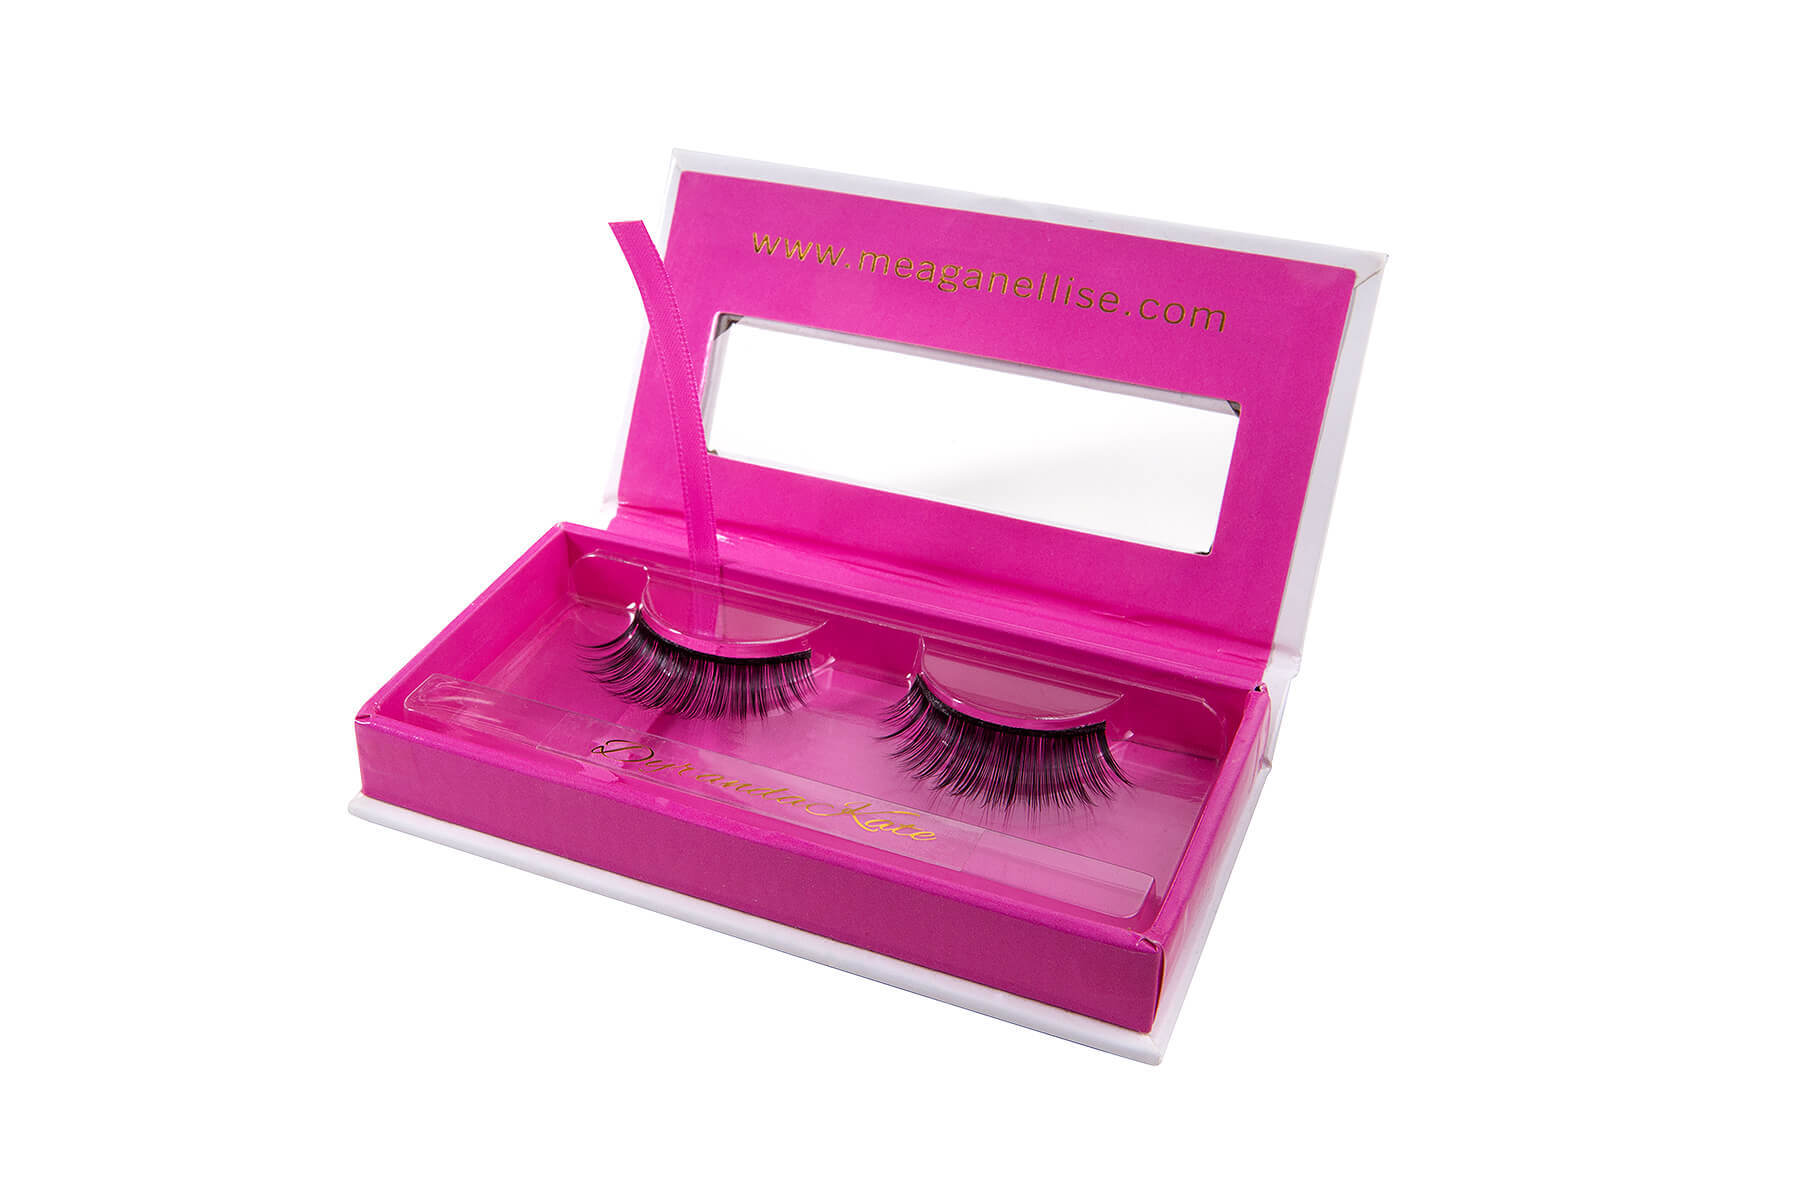 DyrandraKate Eyelashes - Open Box